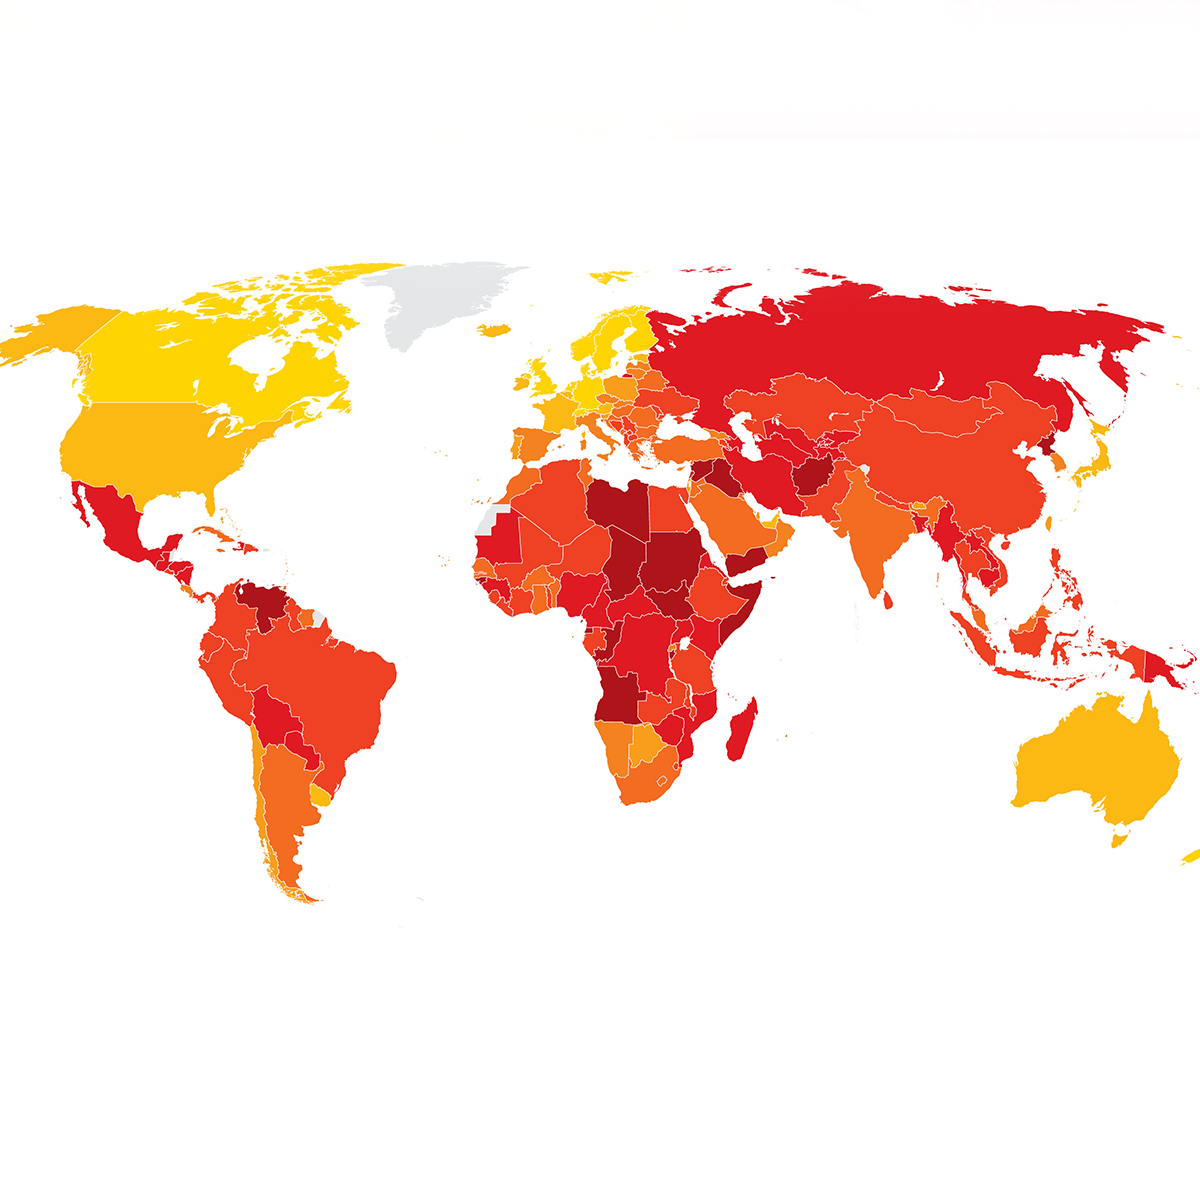 Corruption Perceptions Index 2018 - Transparency International